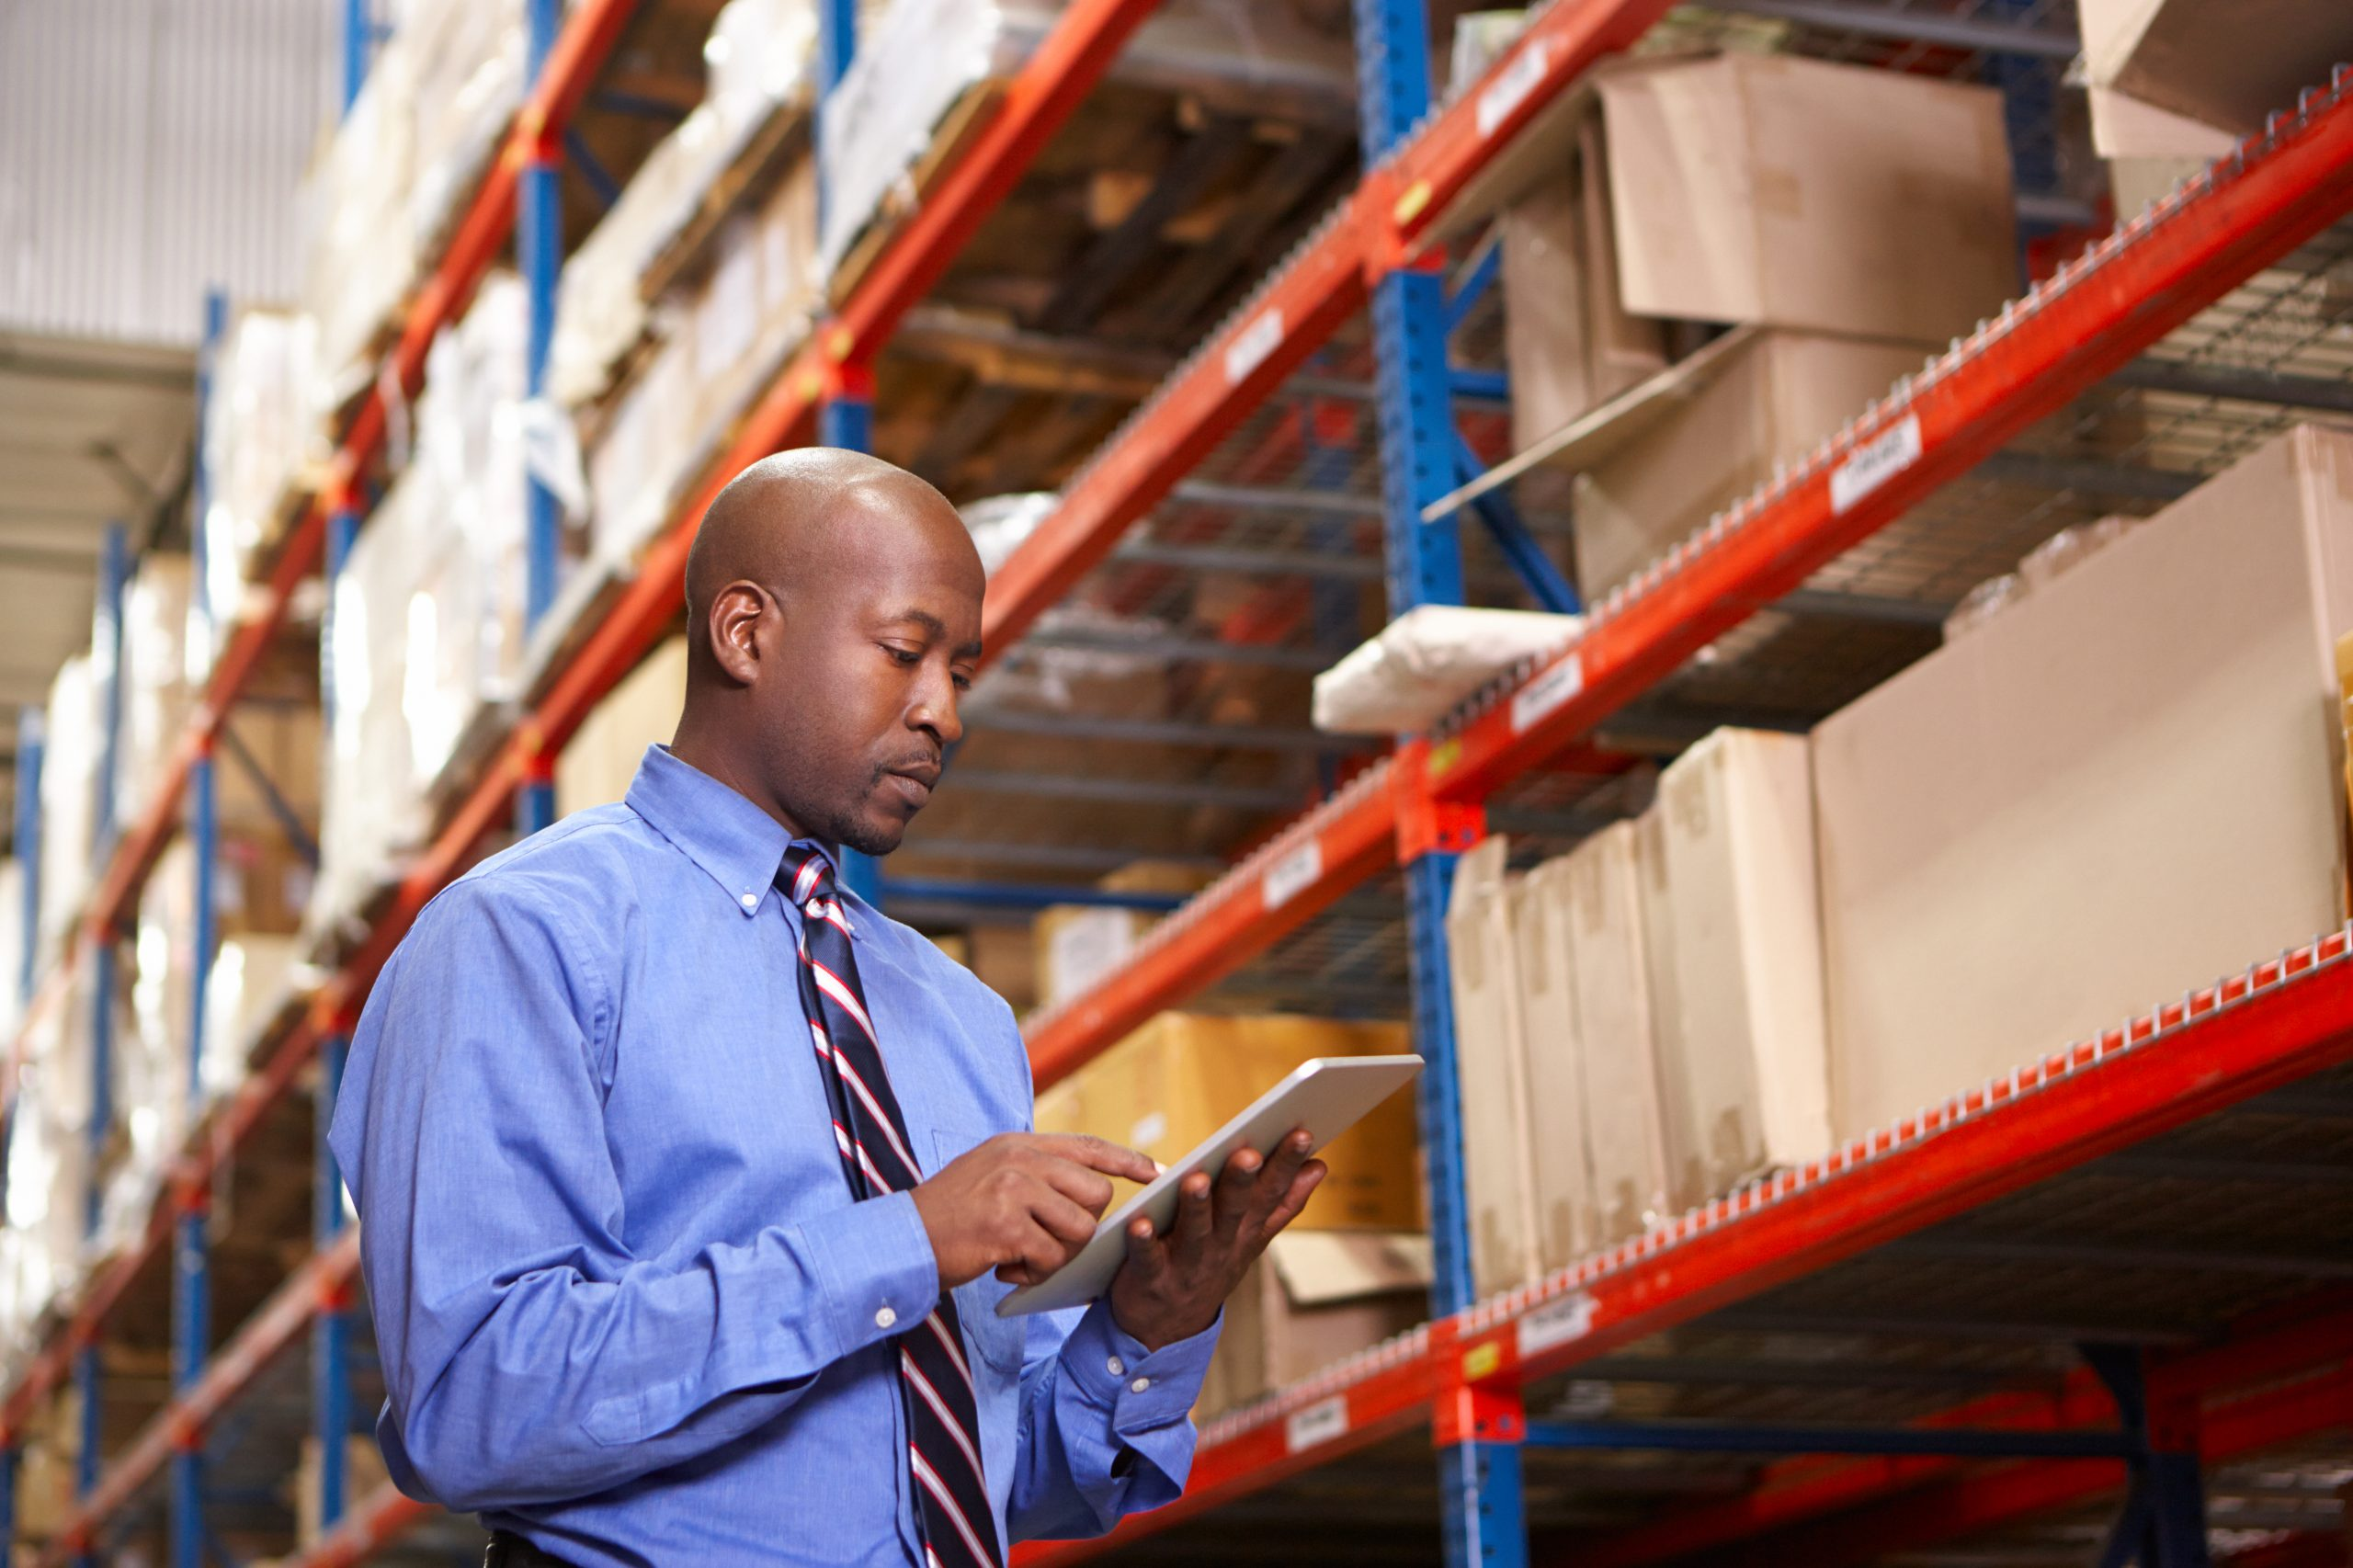 Warehouse manager looking at tablet and reviewing storage procedures